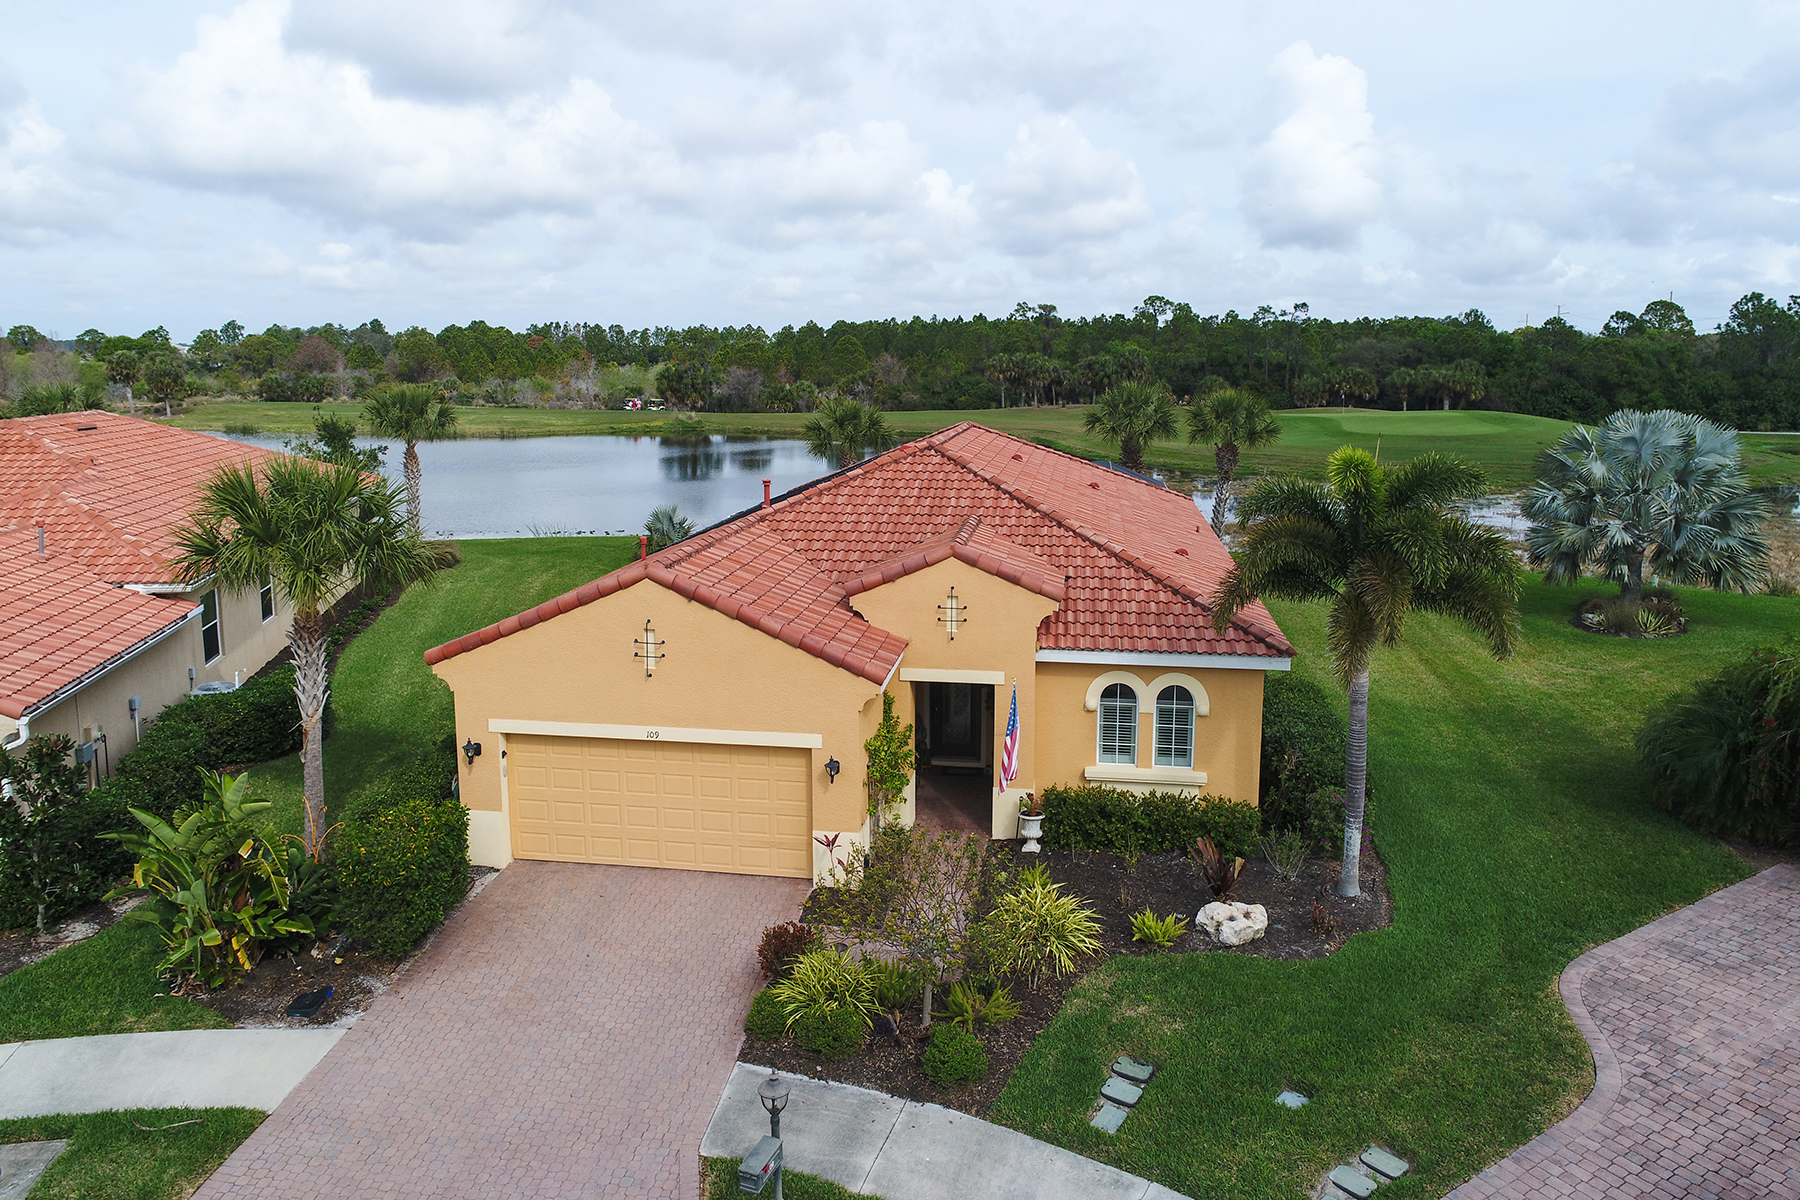 Single Family Home for Sale at VENETIAN GOLF & RIVER CLUB 109 Cipriani Ct, North Venice, Florida, 34275 United States